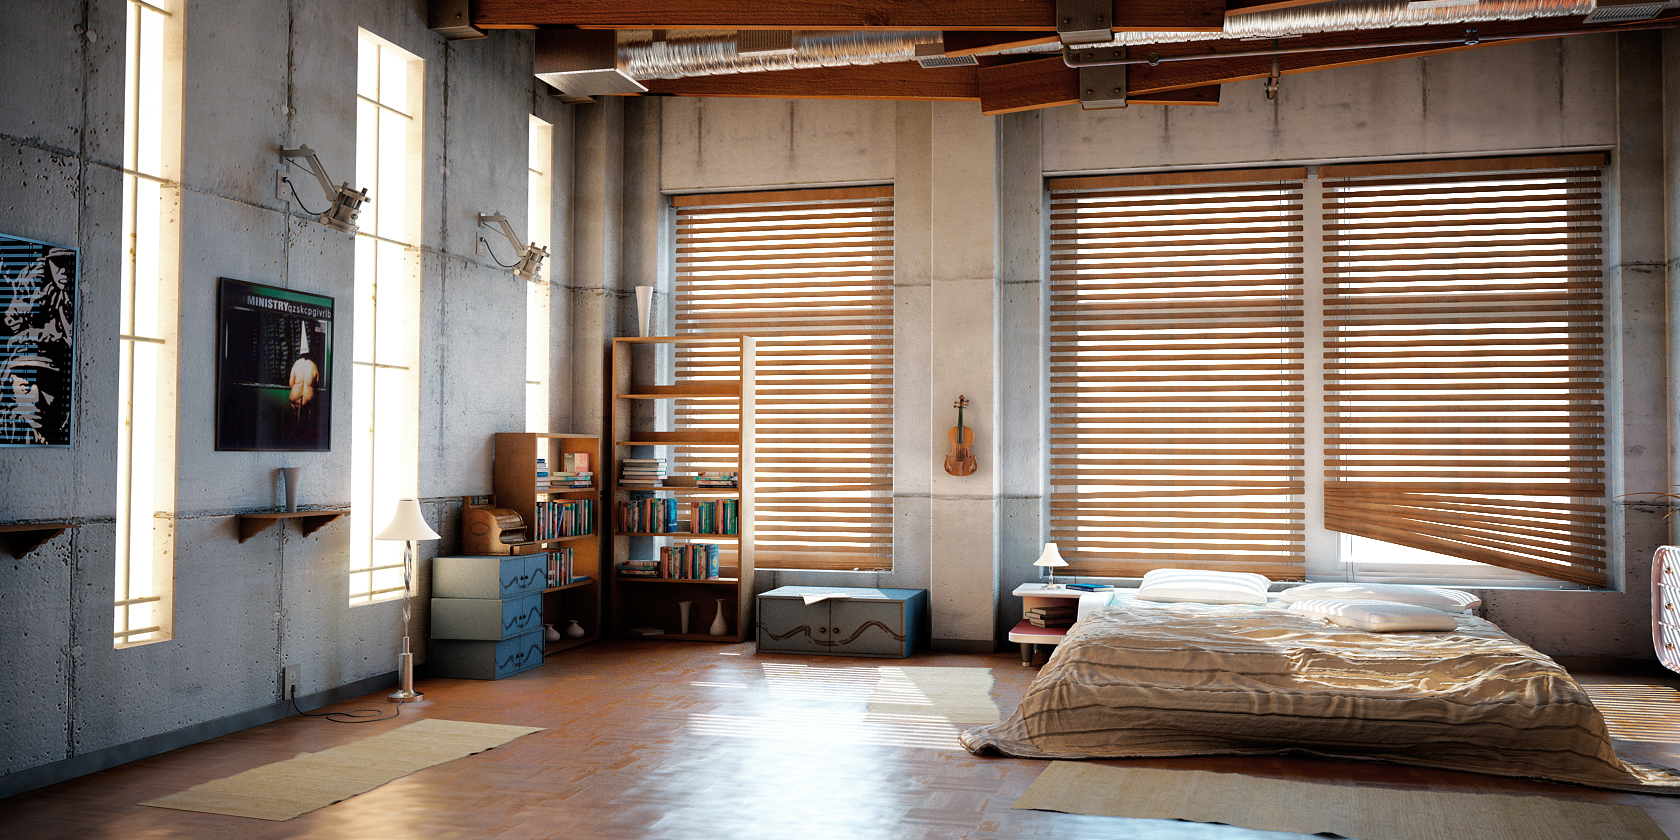 Industrial loft by denisvema on deviantart Loft or studio apartment